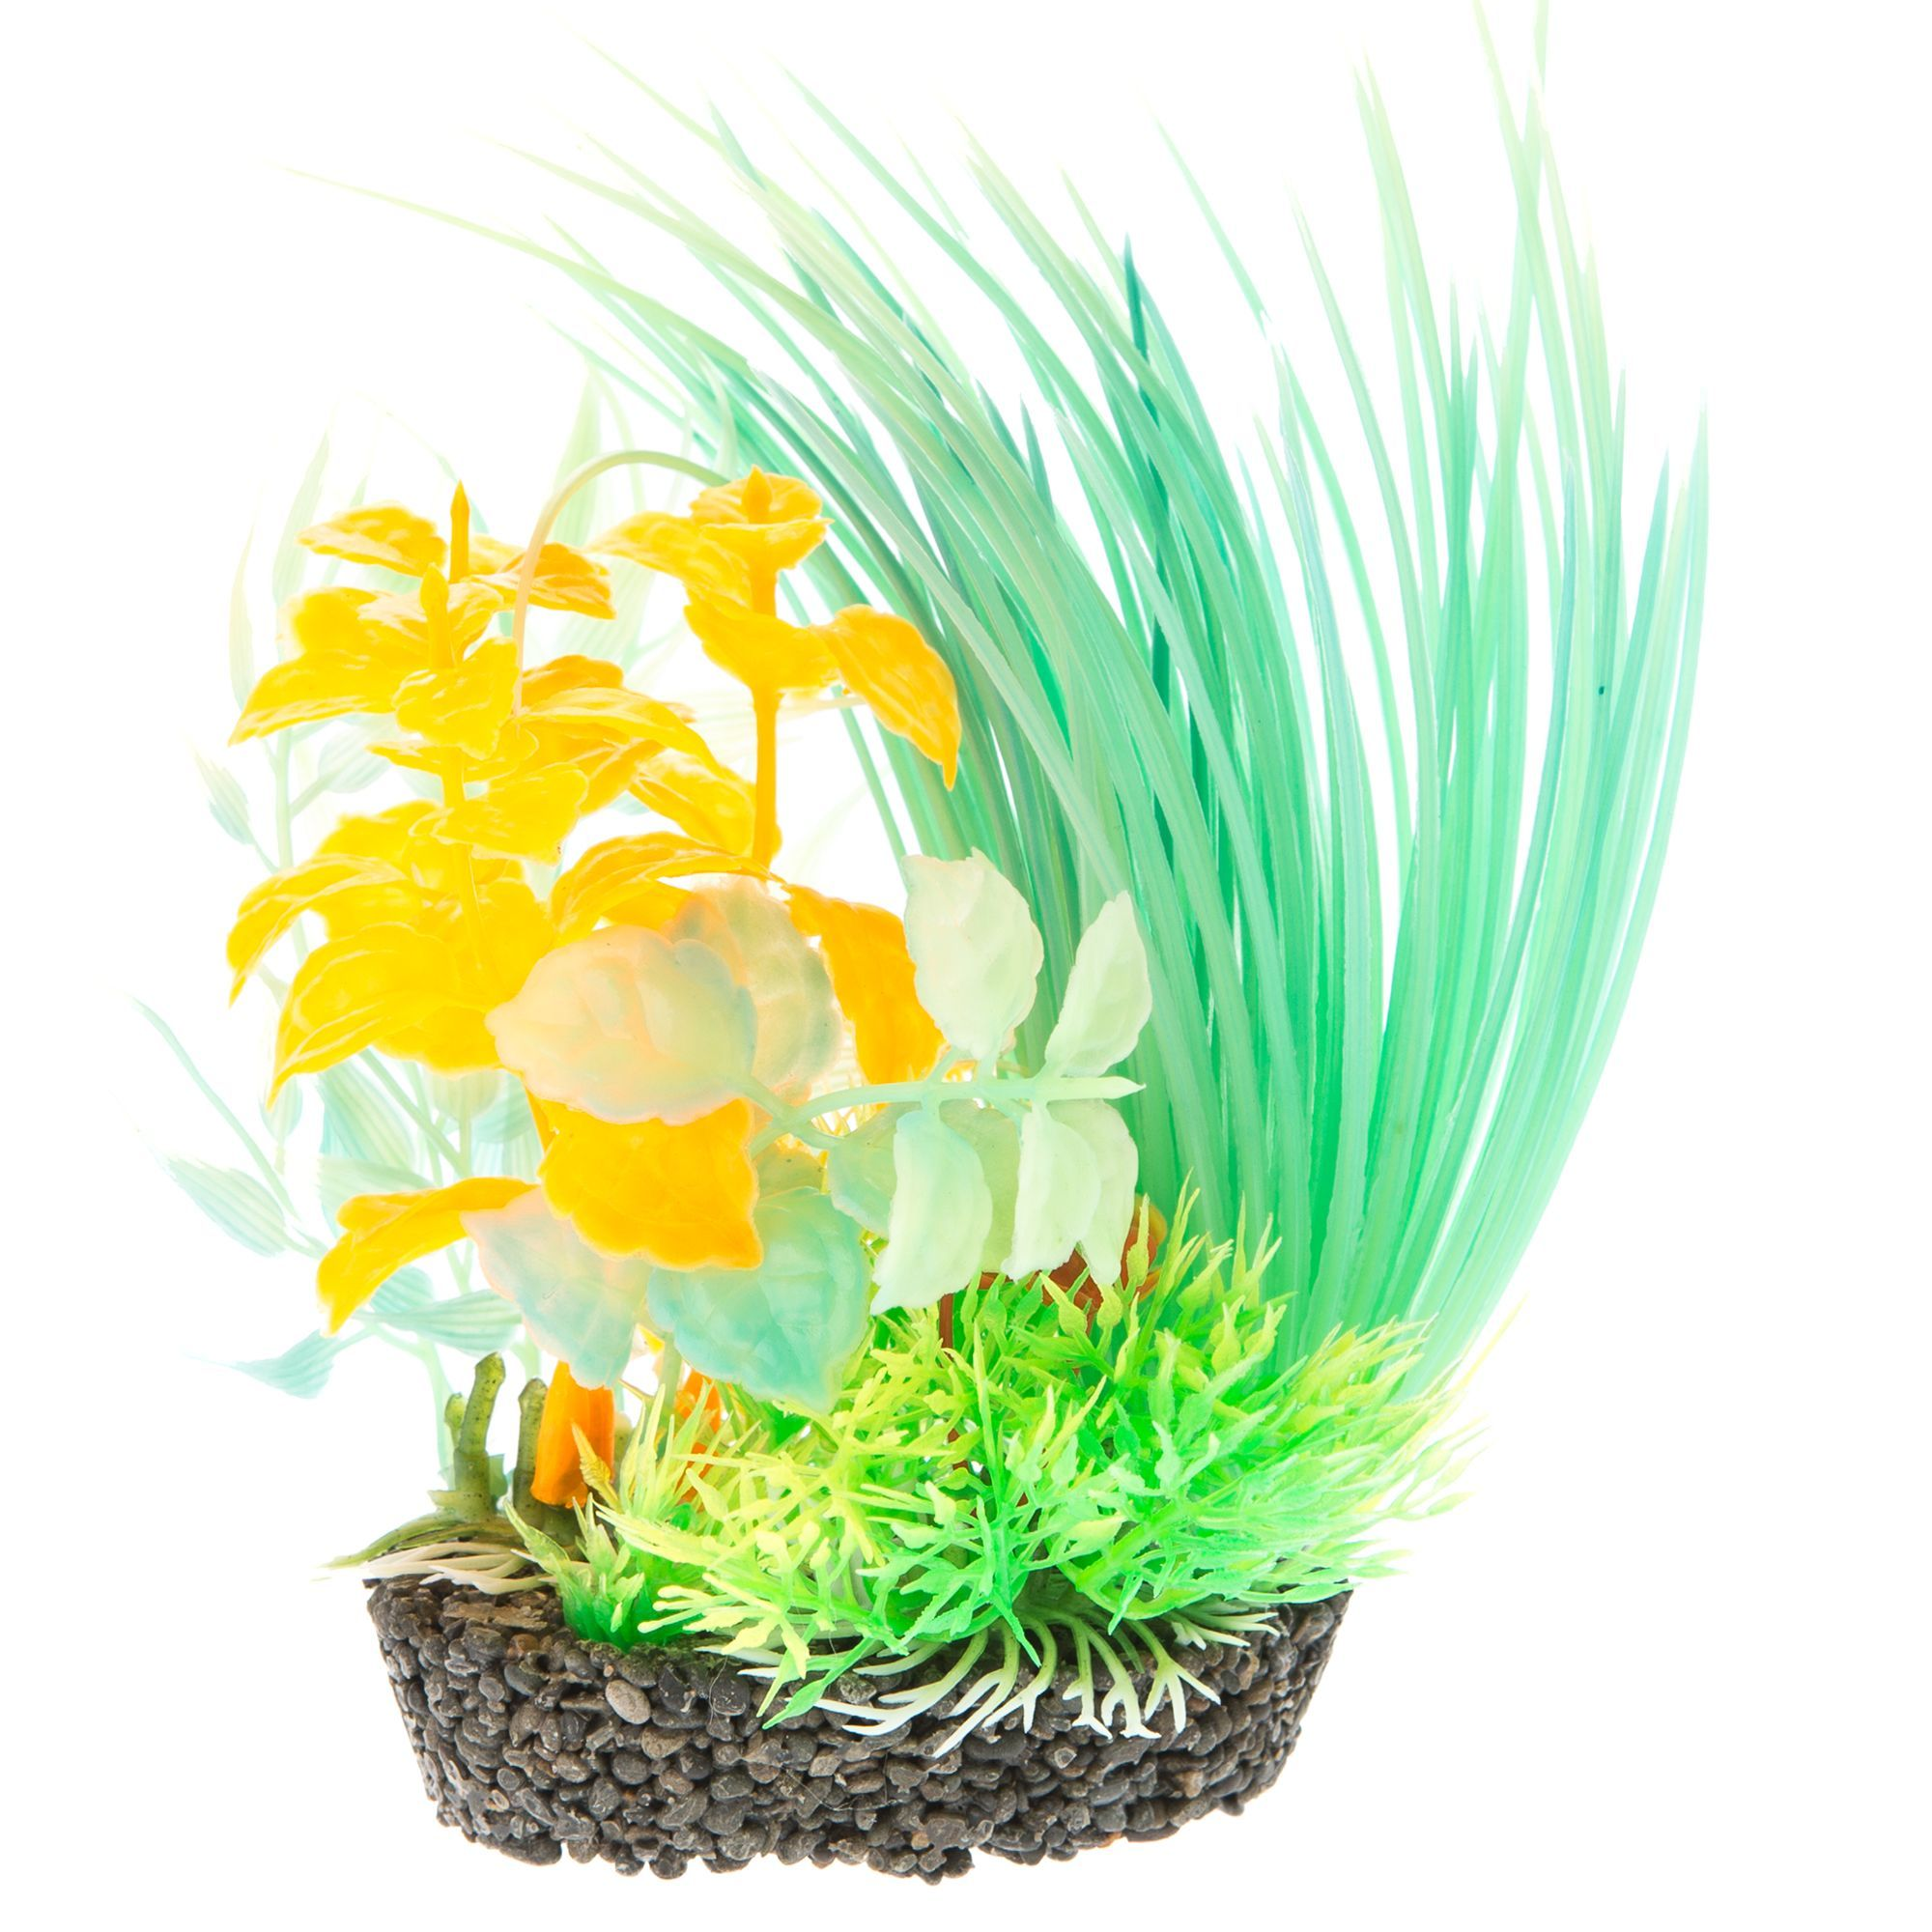 Top Fin Green And Orange Aquarium Plant In 2020 Planted Aquarium Fish Tank Accessories Plants